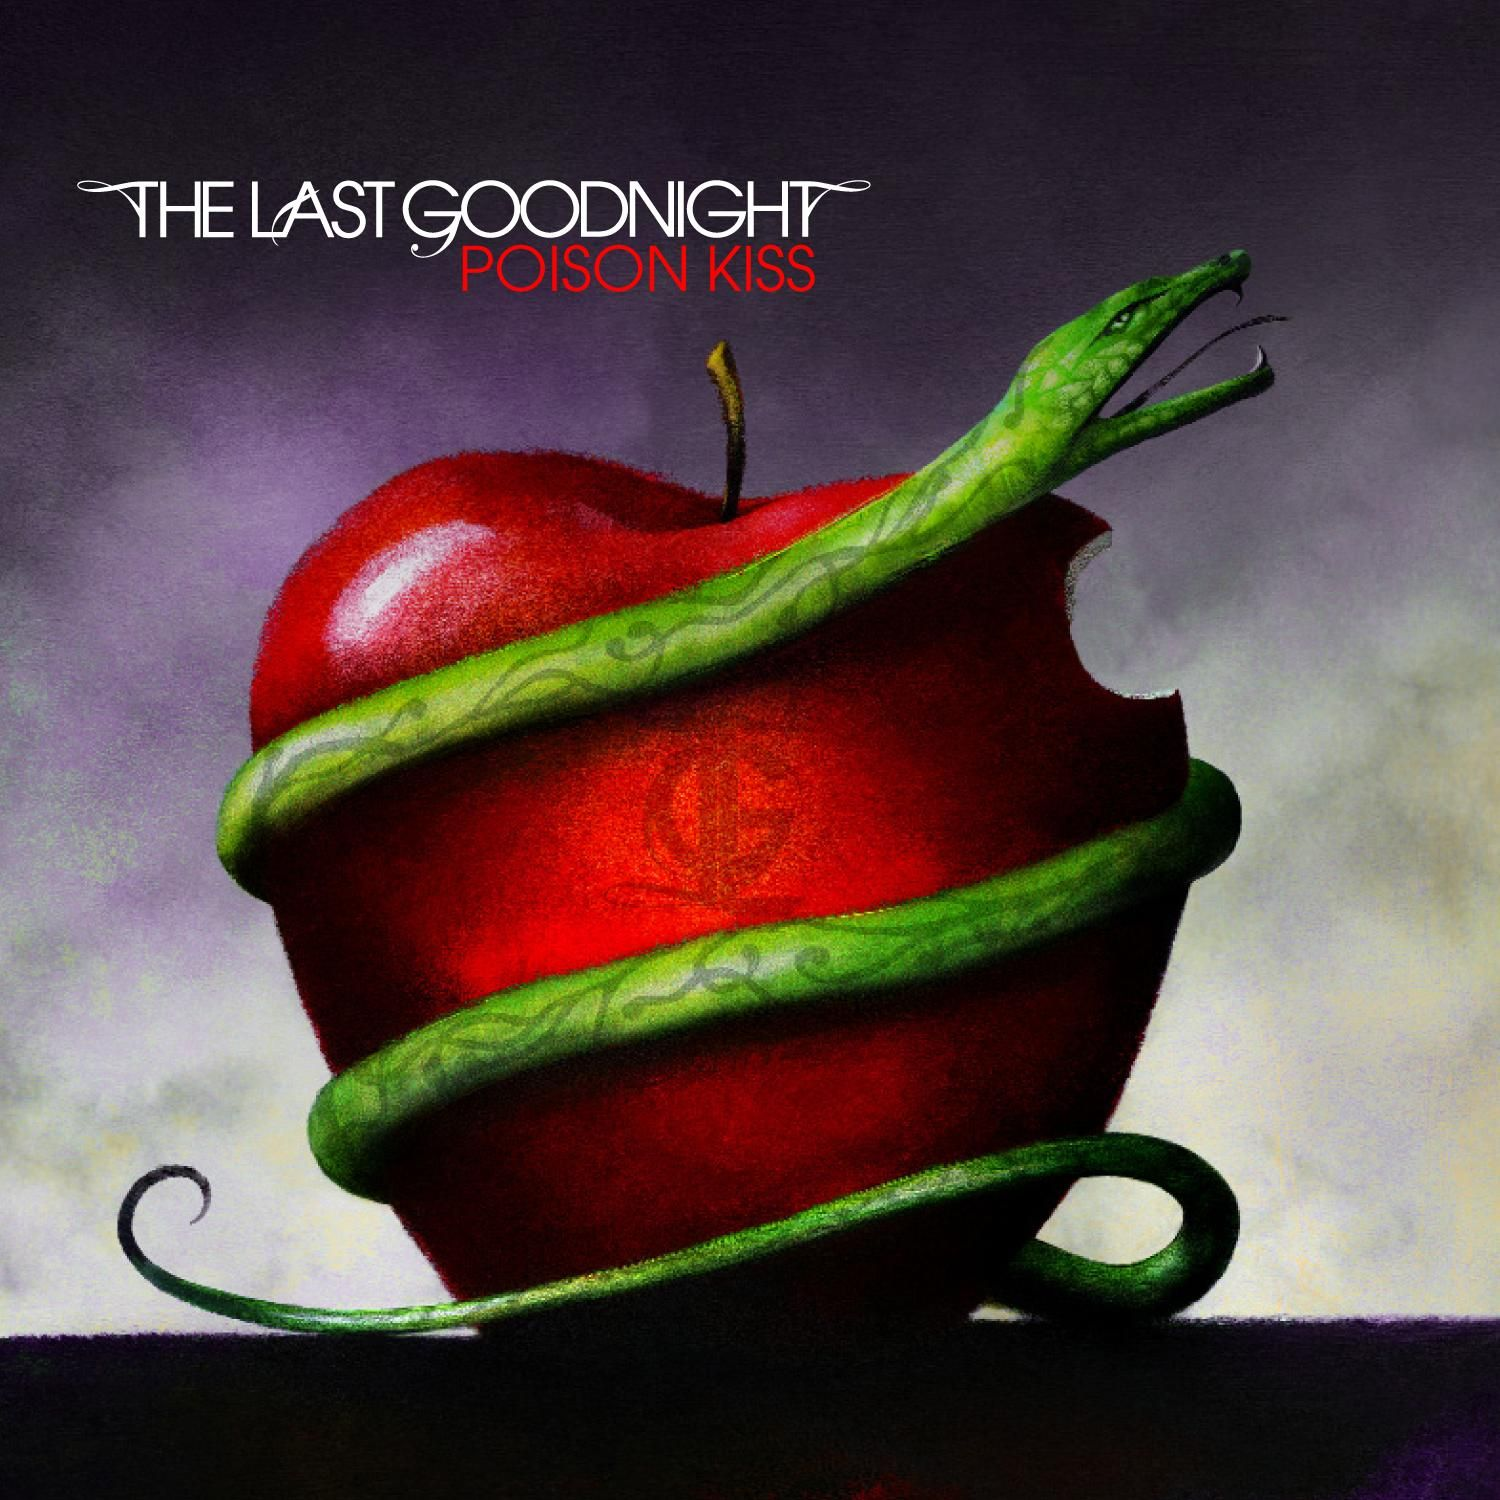 The Last Goodnight - Poison Kiss album cover